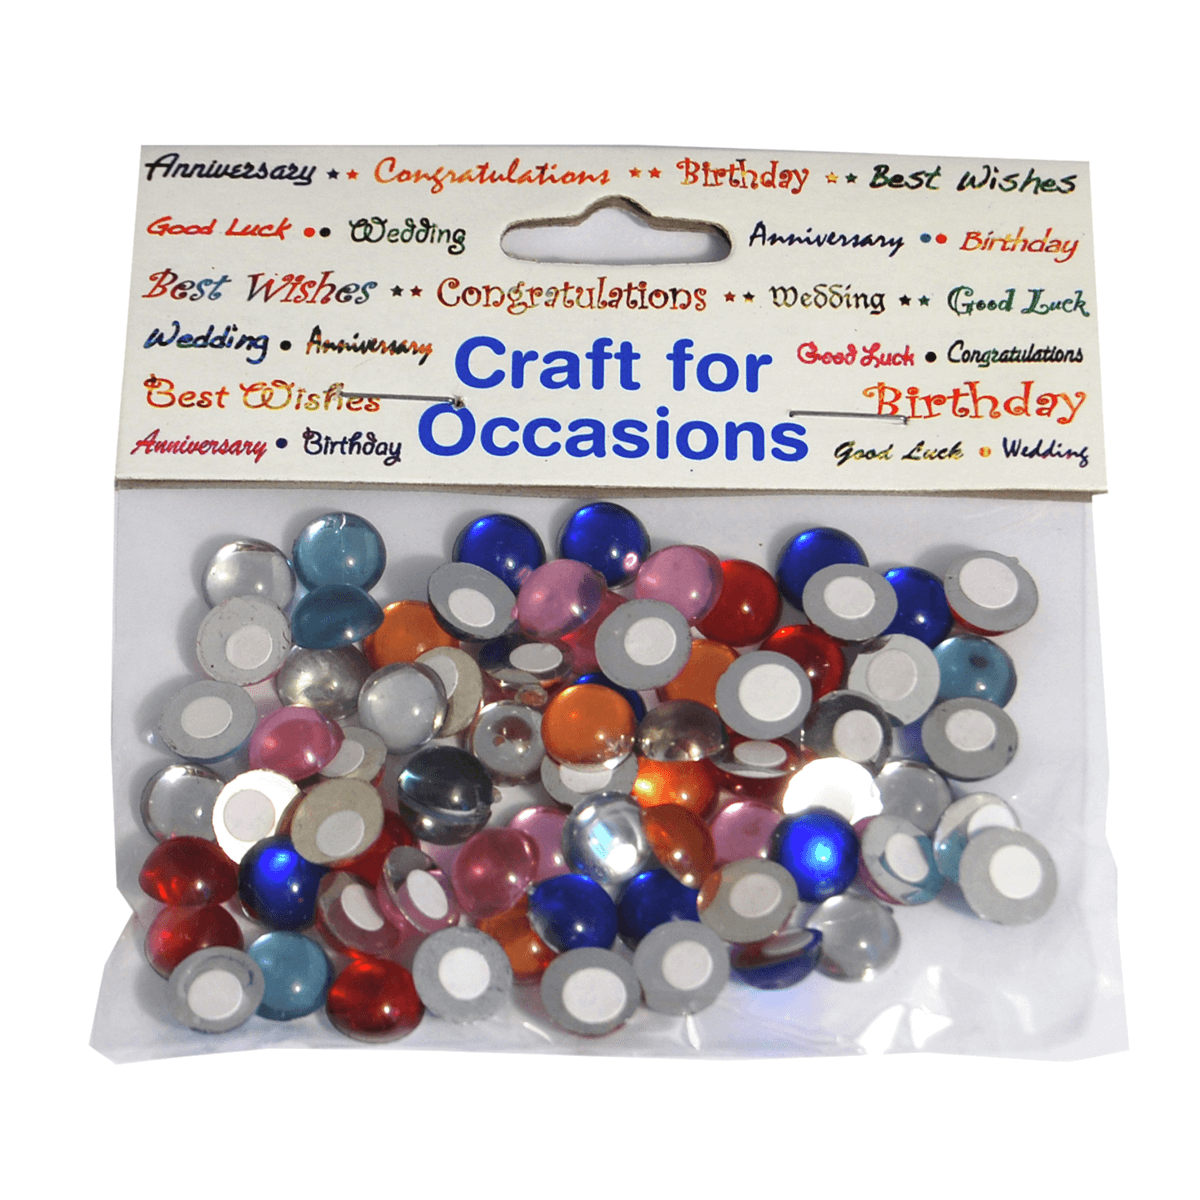 72 x Crystal Domes Oval Round Assorted Craft Embellishments Cardmaking